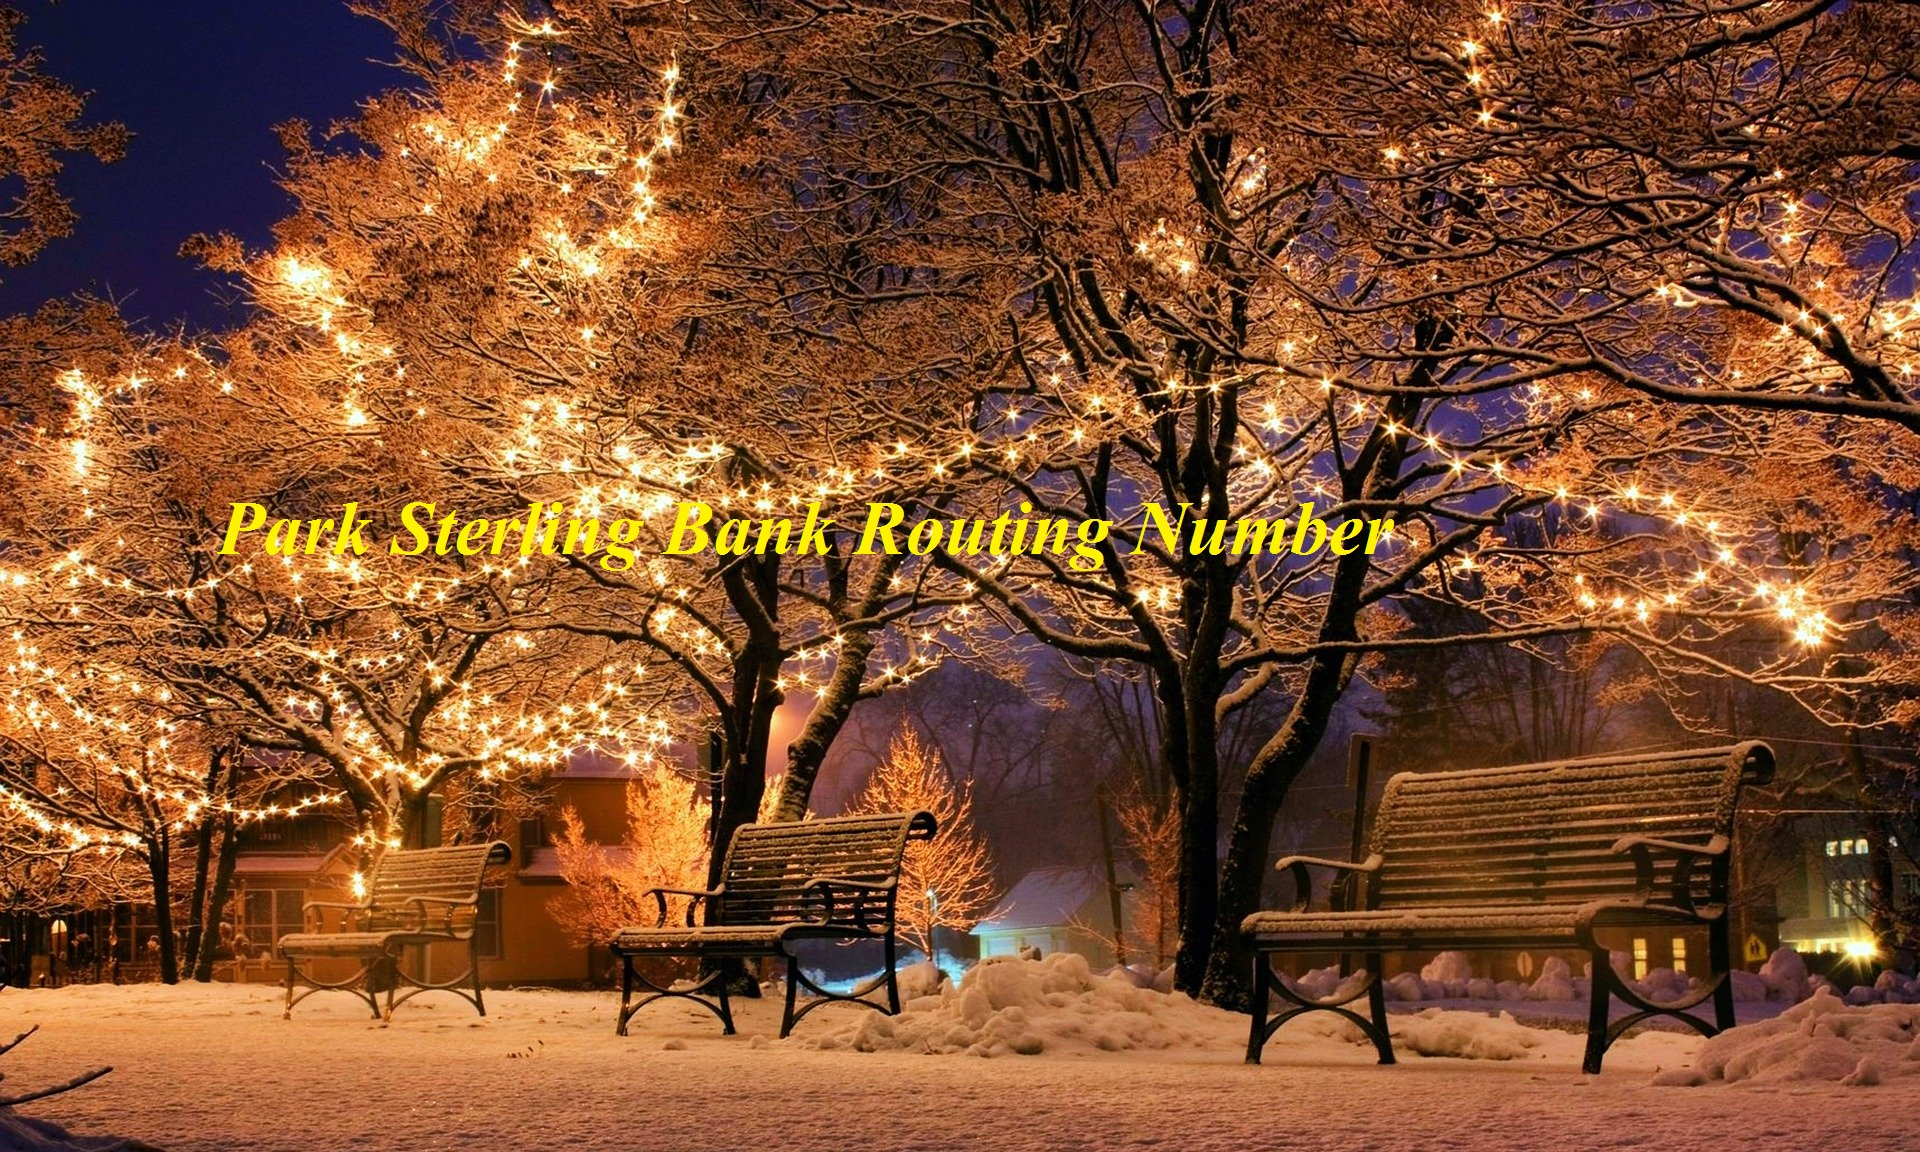 Park Sterling Bank Routing Number